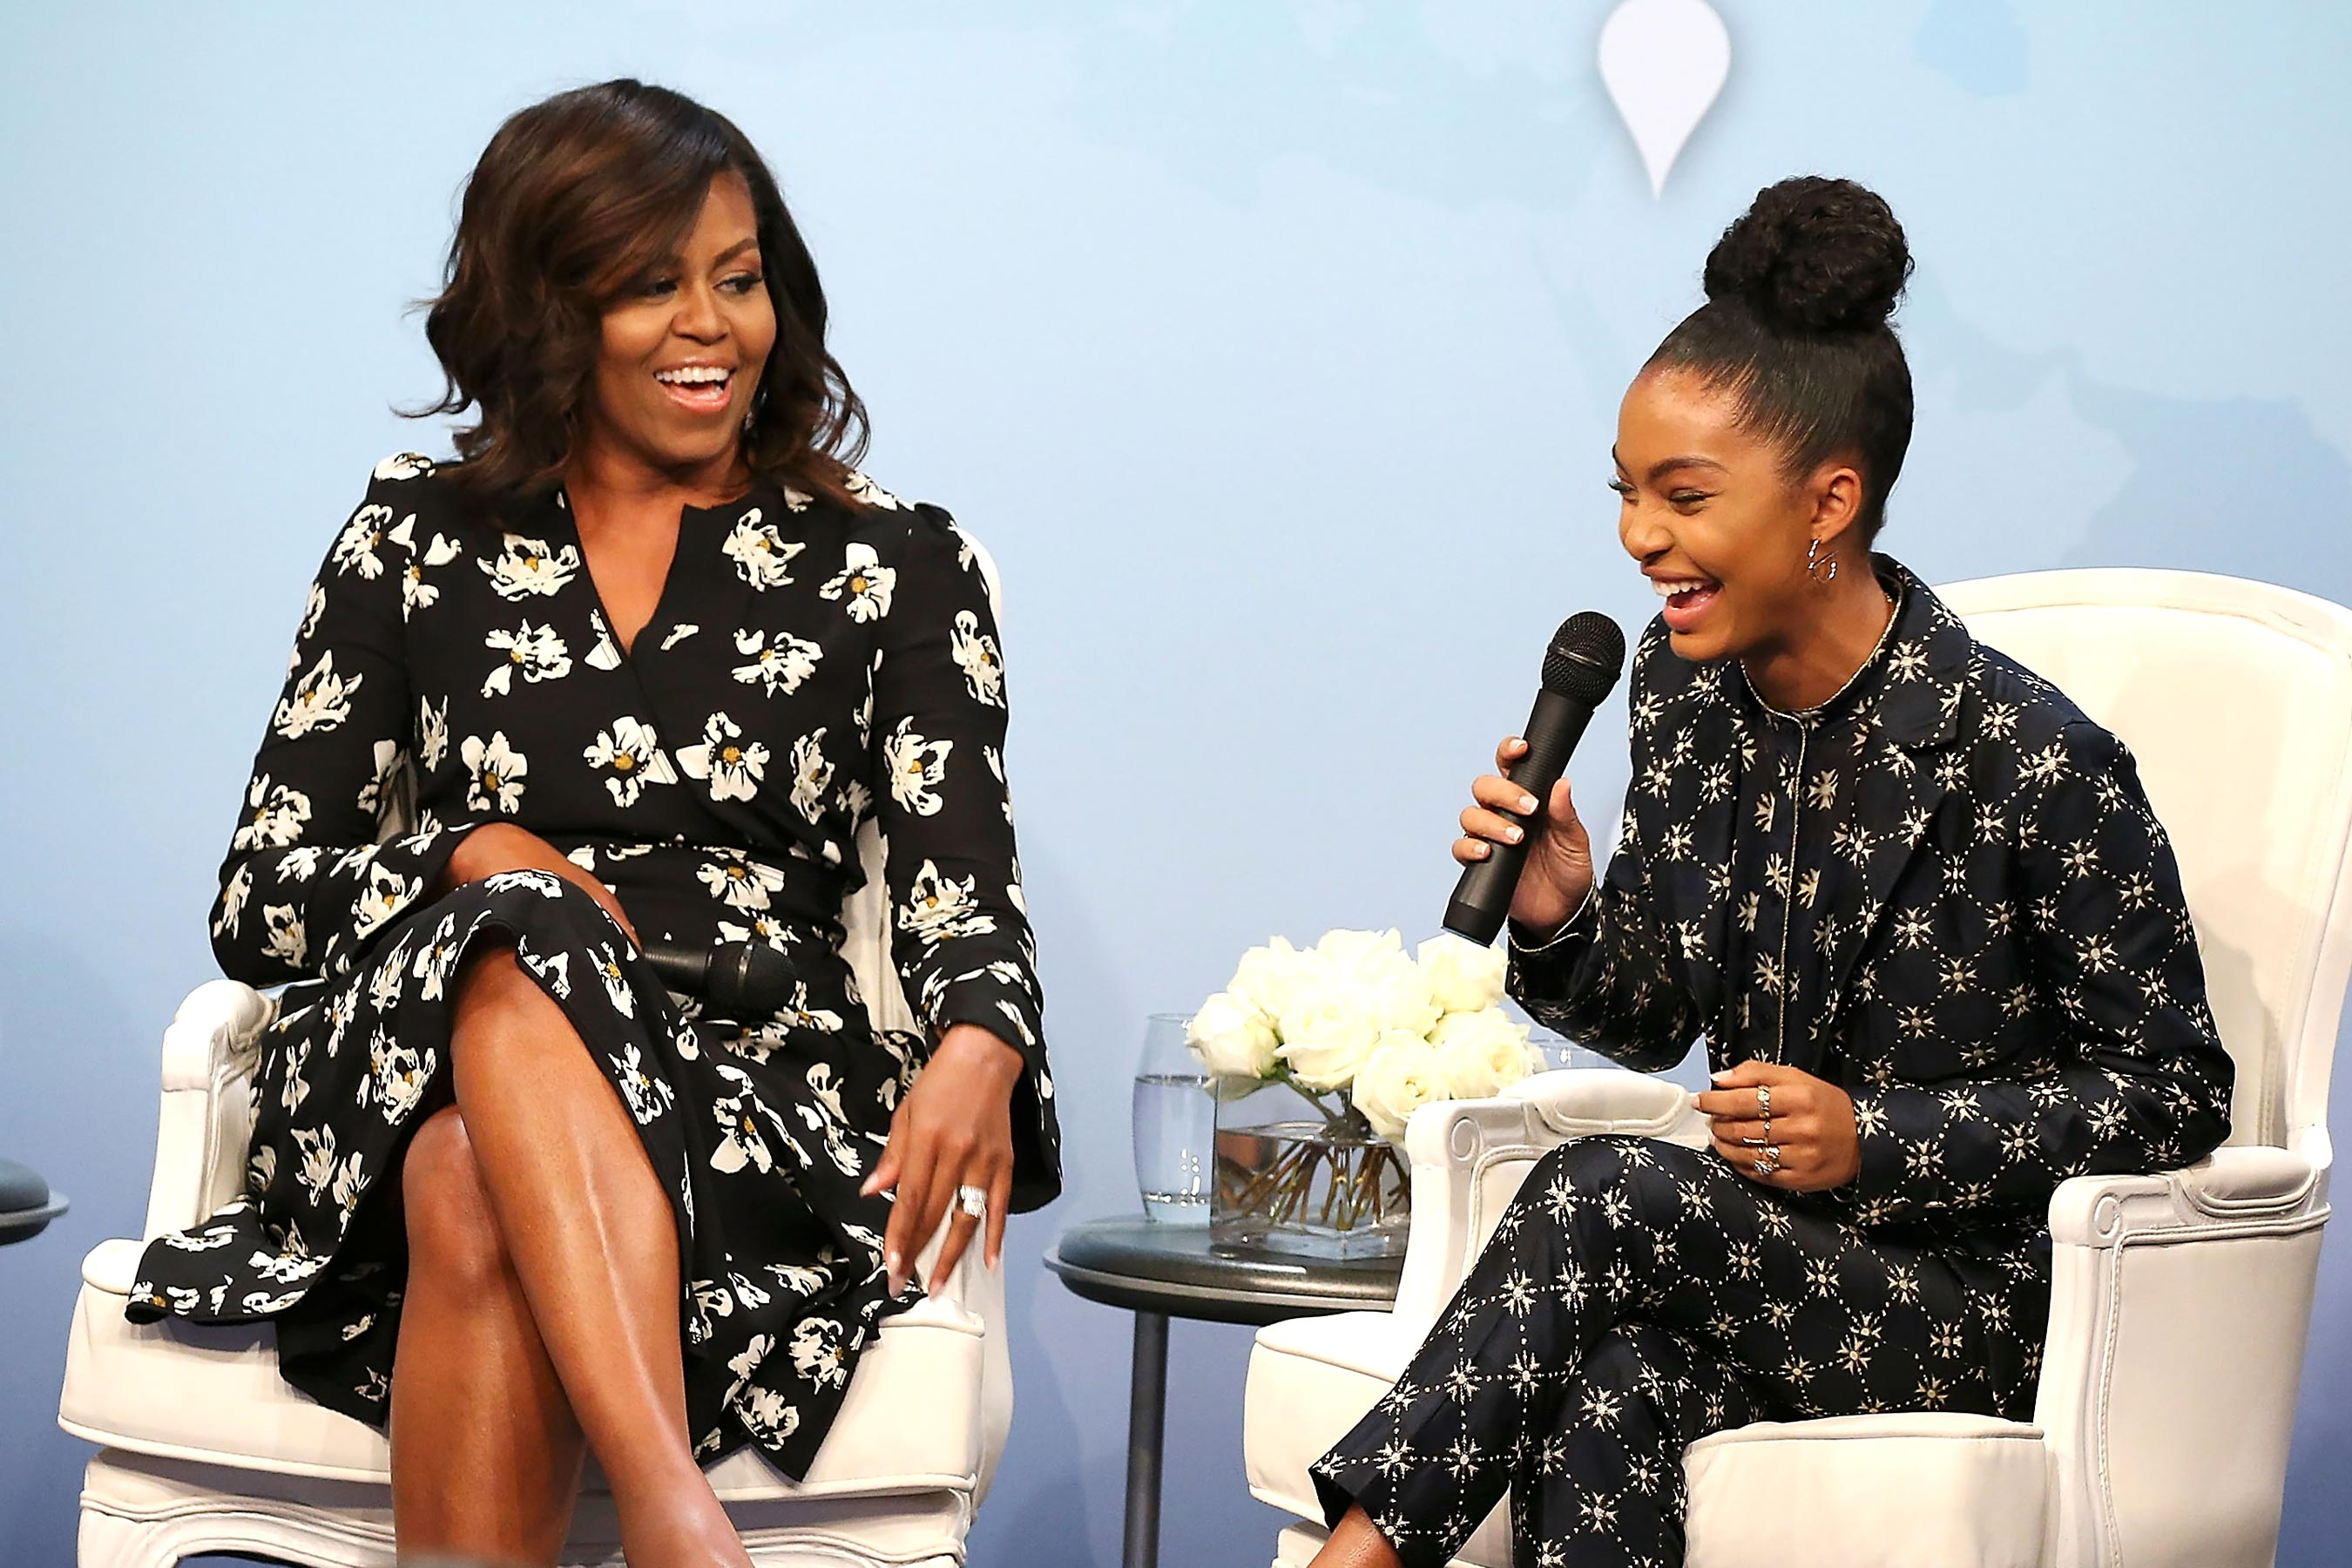 WASHINGTON, DC - OCTOBER 11:  First Lady of the United States Michelle Obama (L) and actress and activist Yara Shahidi participate in panel discussion at Glamour Hosts  A Brighter Future: A Global Conversation on Girls' Education  with First Lady Michelle Obama at The Newseum on October 11, 2016 in Washington, DC.  (Photo by Paul Morigi/Getty Images for Glamour)